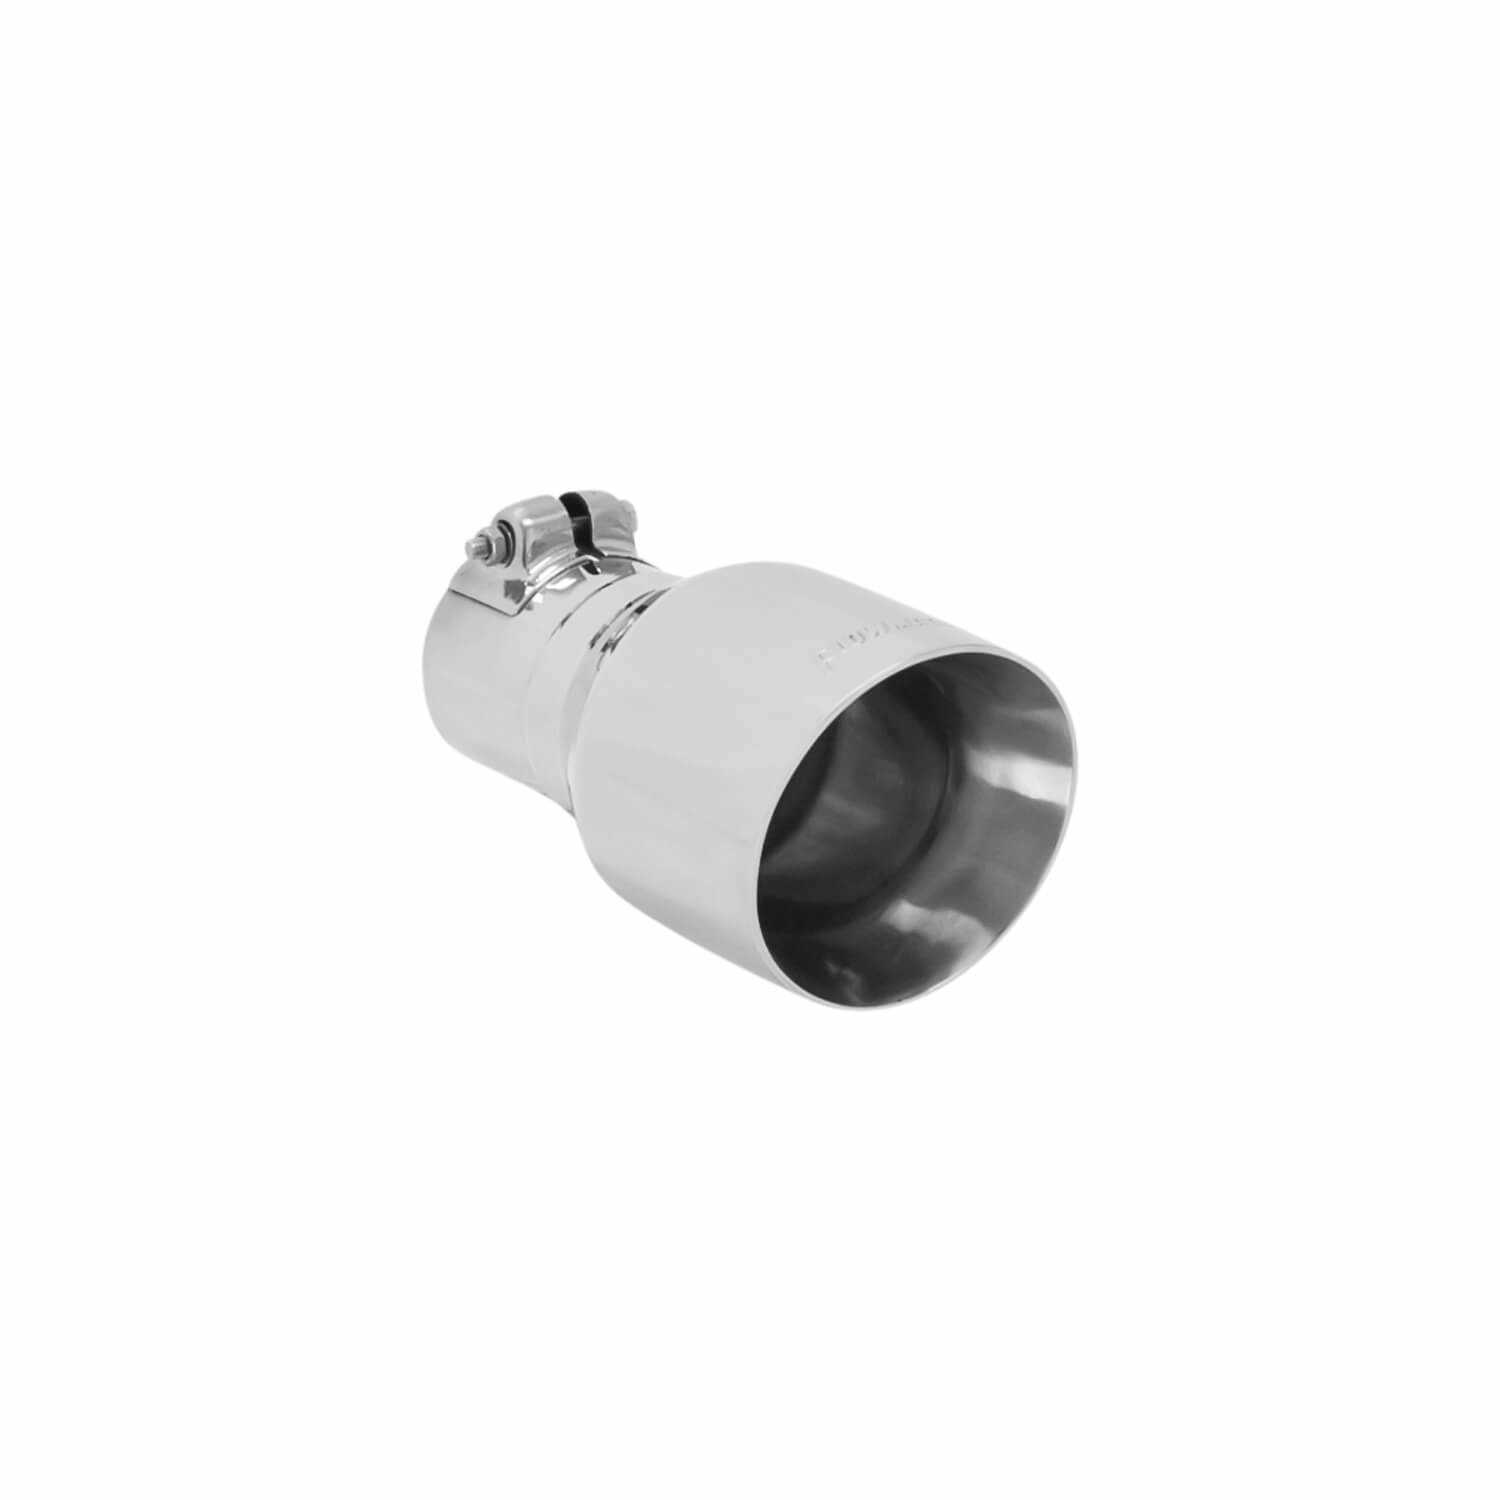 15396 Flowmaster Stainless Steel Exhaust Tip